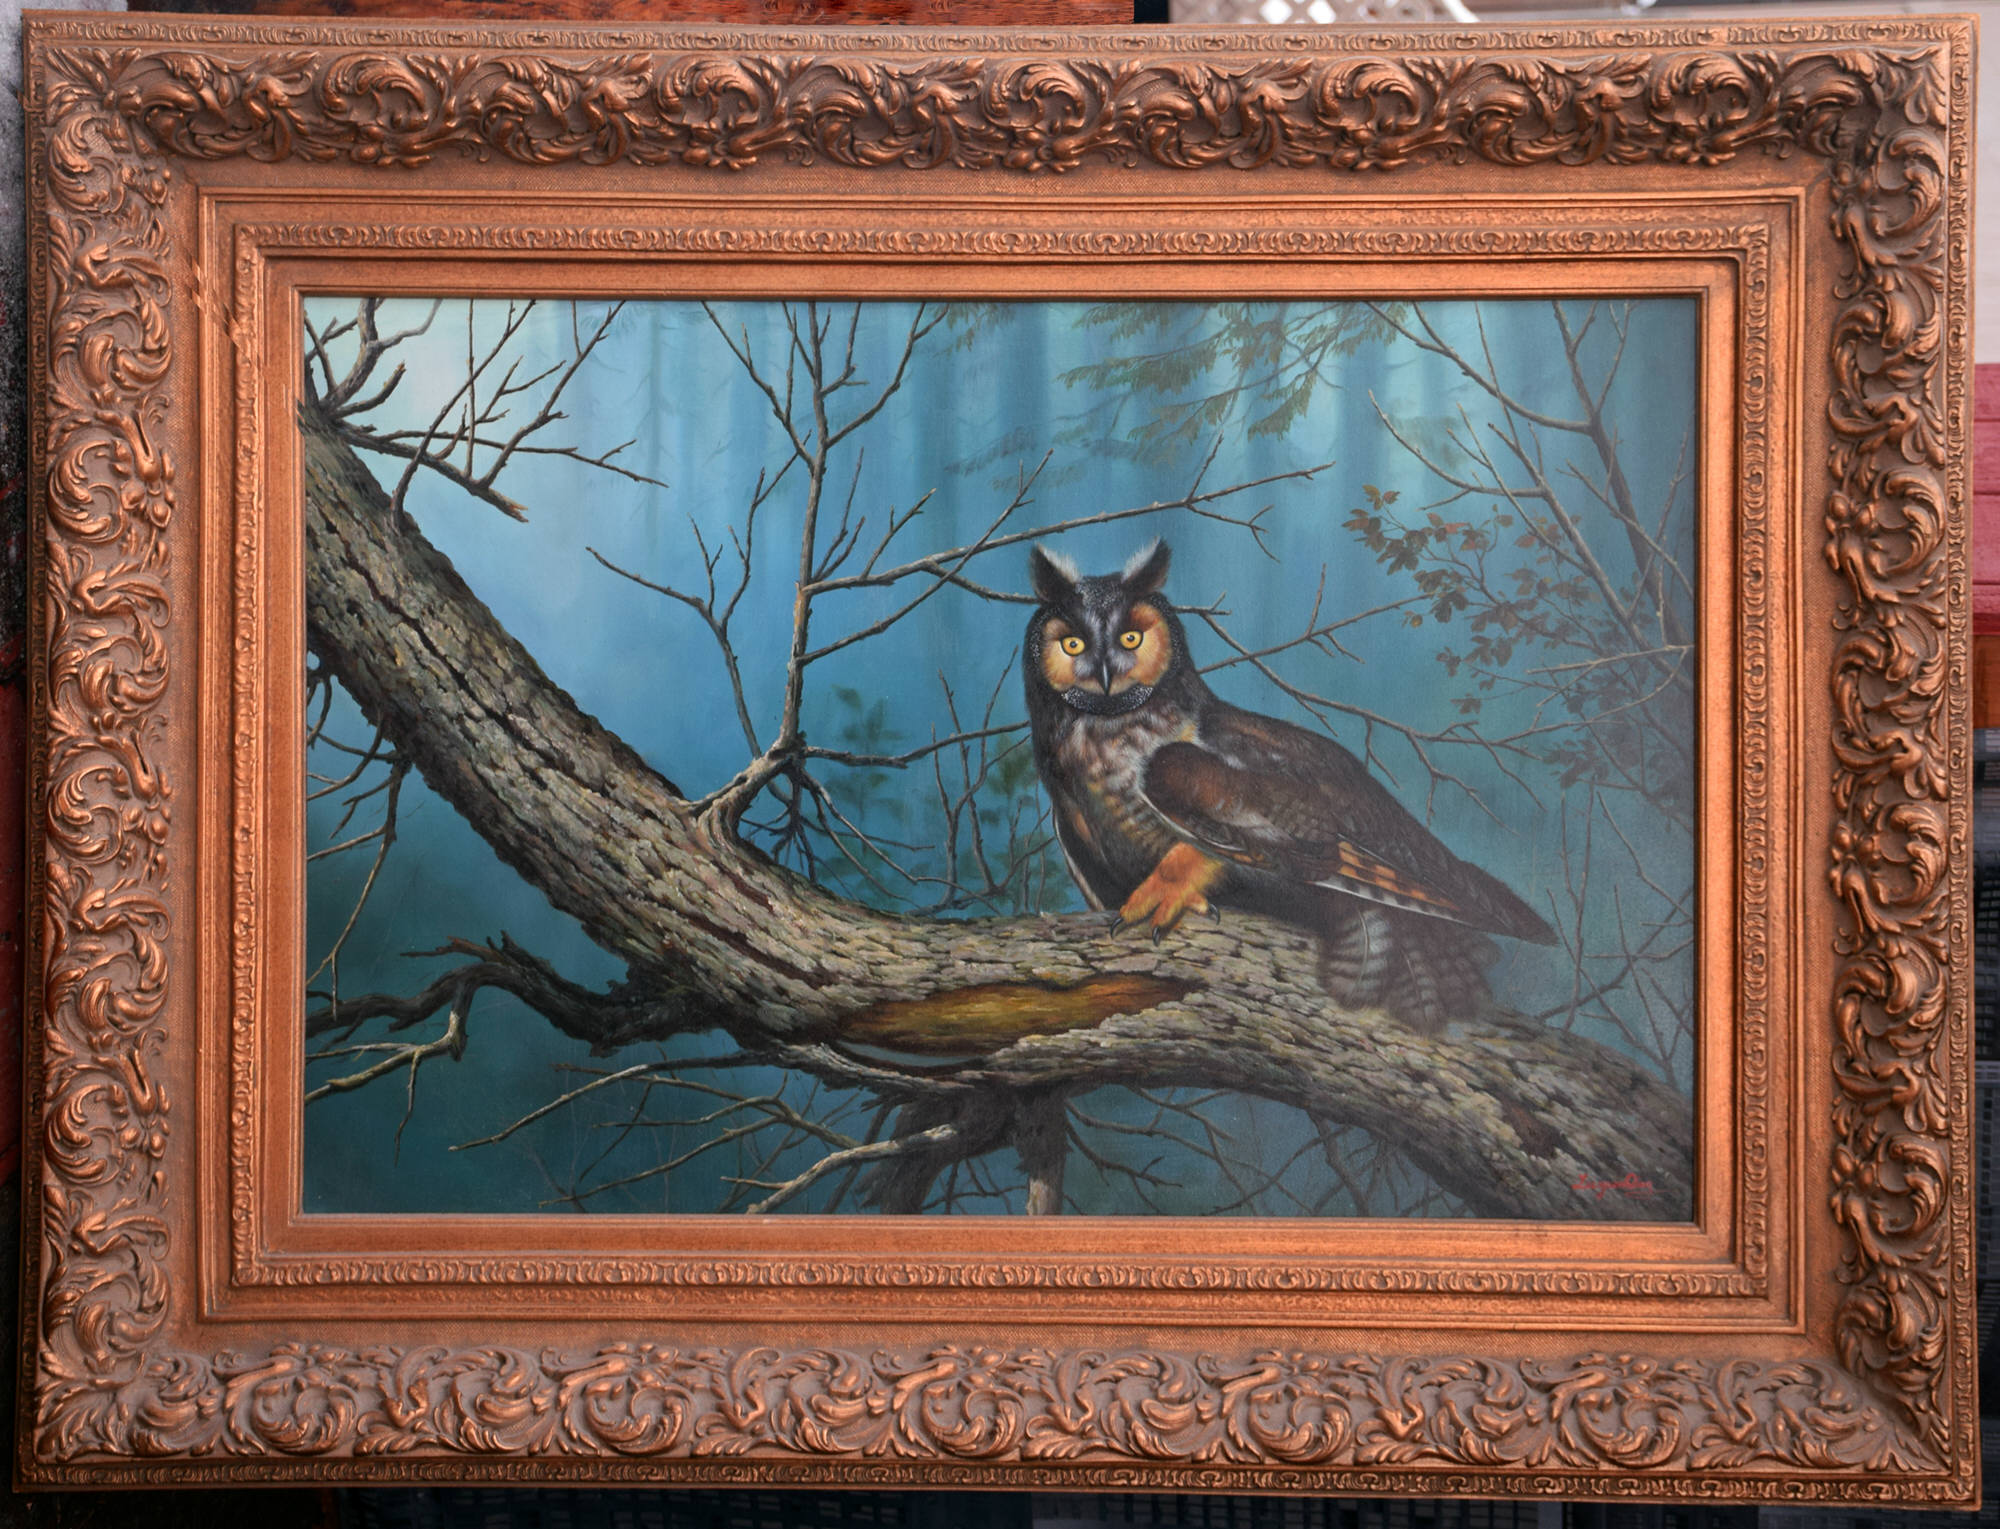 Luyuan Qing. Owl in the early morning forest. Size of picture 24-inch x 36-inch. Sold framed 37-inch x 49-inch. $3,995.